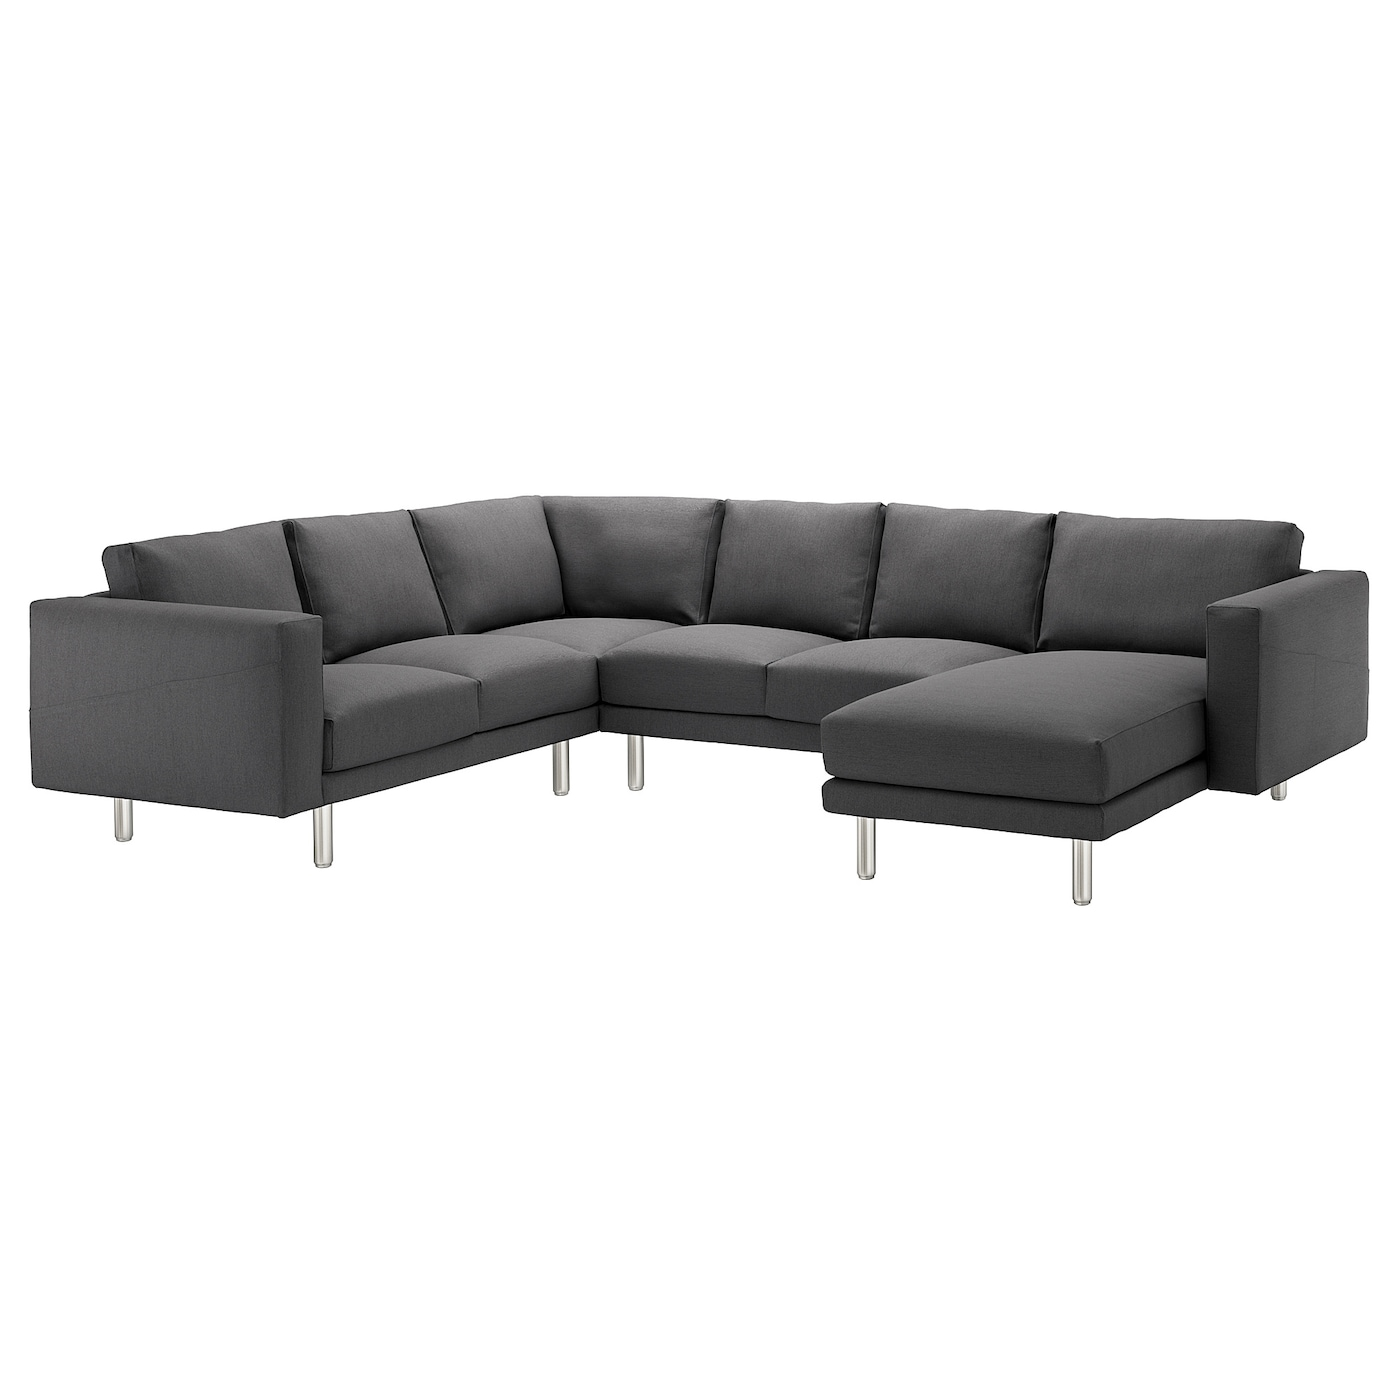 Norsborg corner sofa 5 seat with chaise longue finnsta for 5 seater sofa with chaise